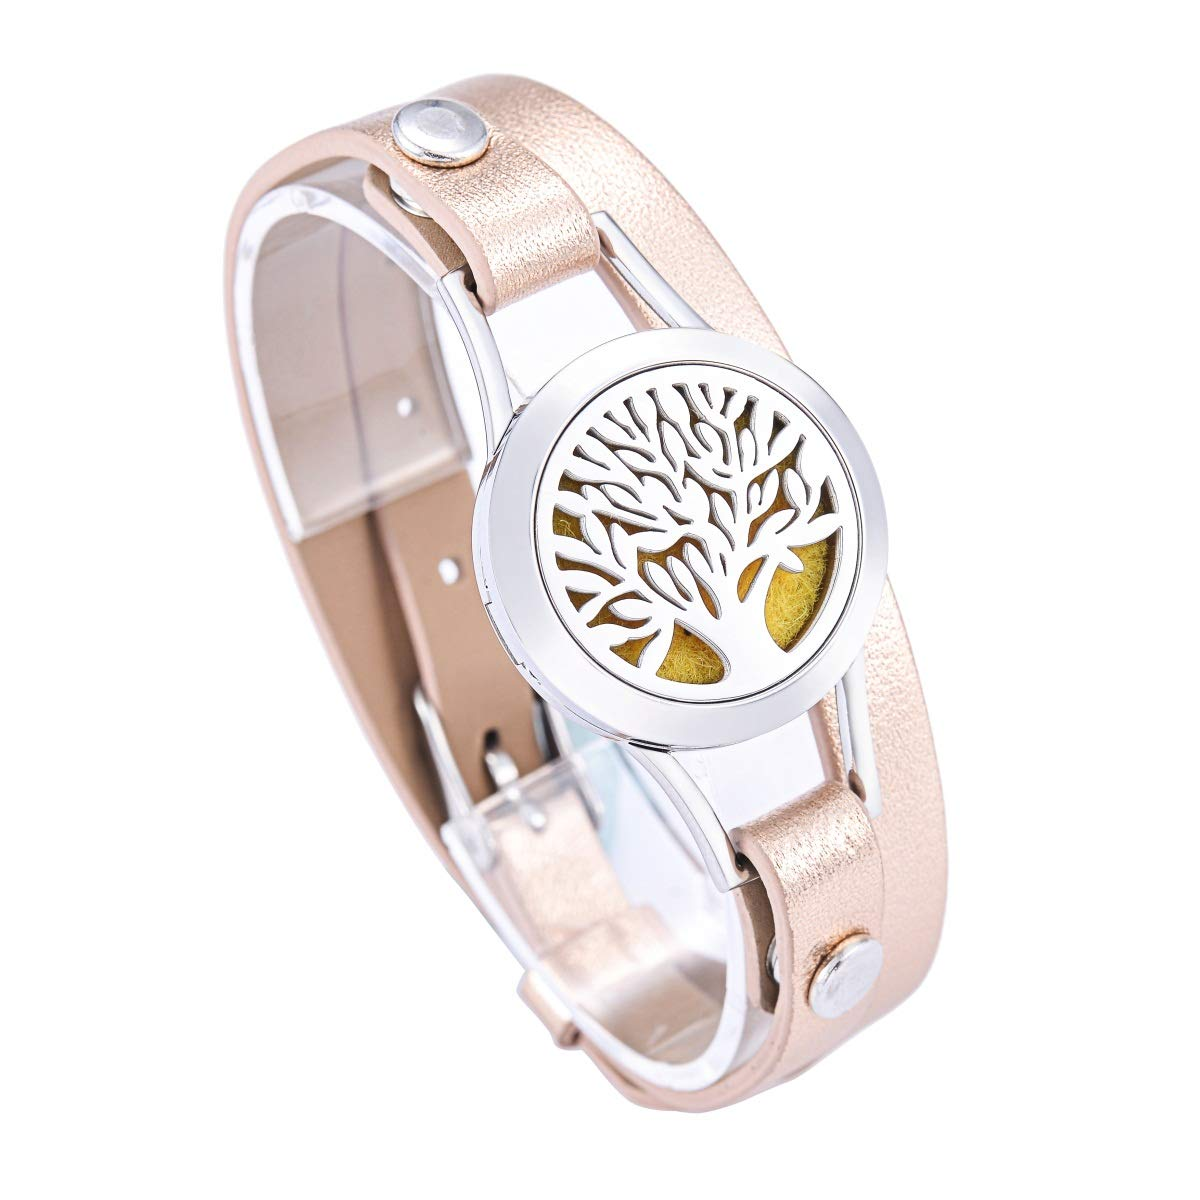 HooAMI Aromatherapy Essential Oil Diffuser Locket Bracelet Leather Band with 11 Color Pads Terrific-Young B0A0EA2SB8